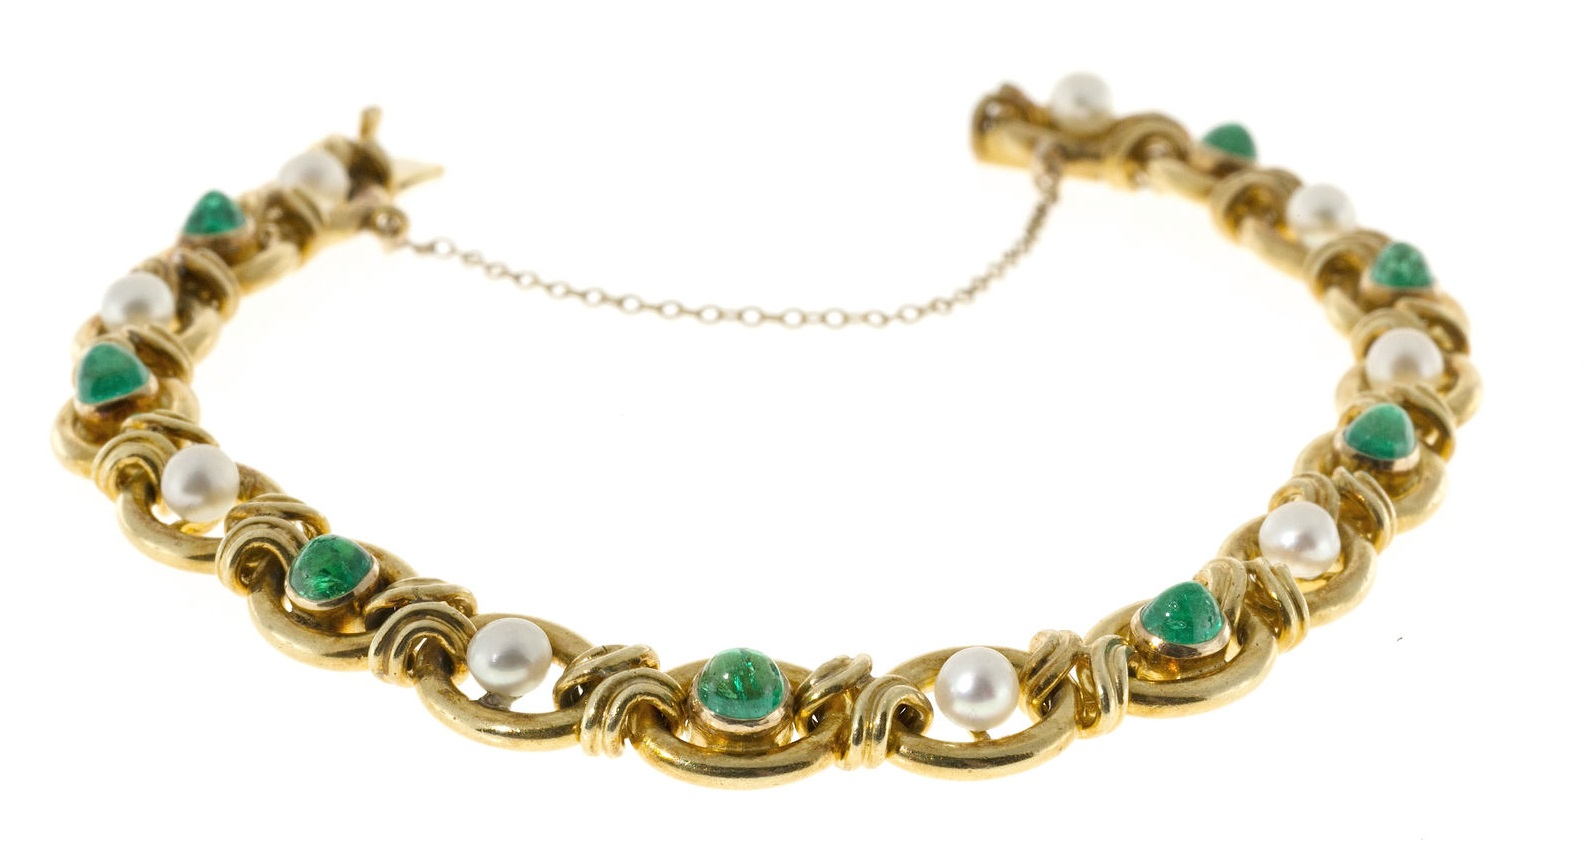 Vintage 1910 Victorian 14k Gold 9 Natural Pearl 8 Genuine Dome Emerald Bracelet